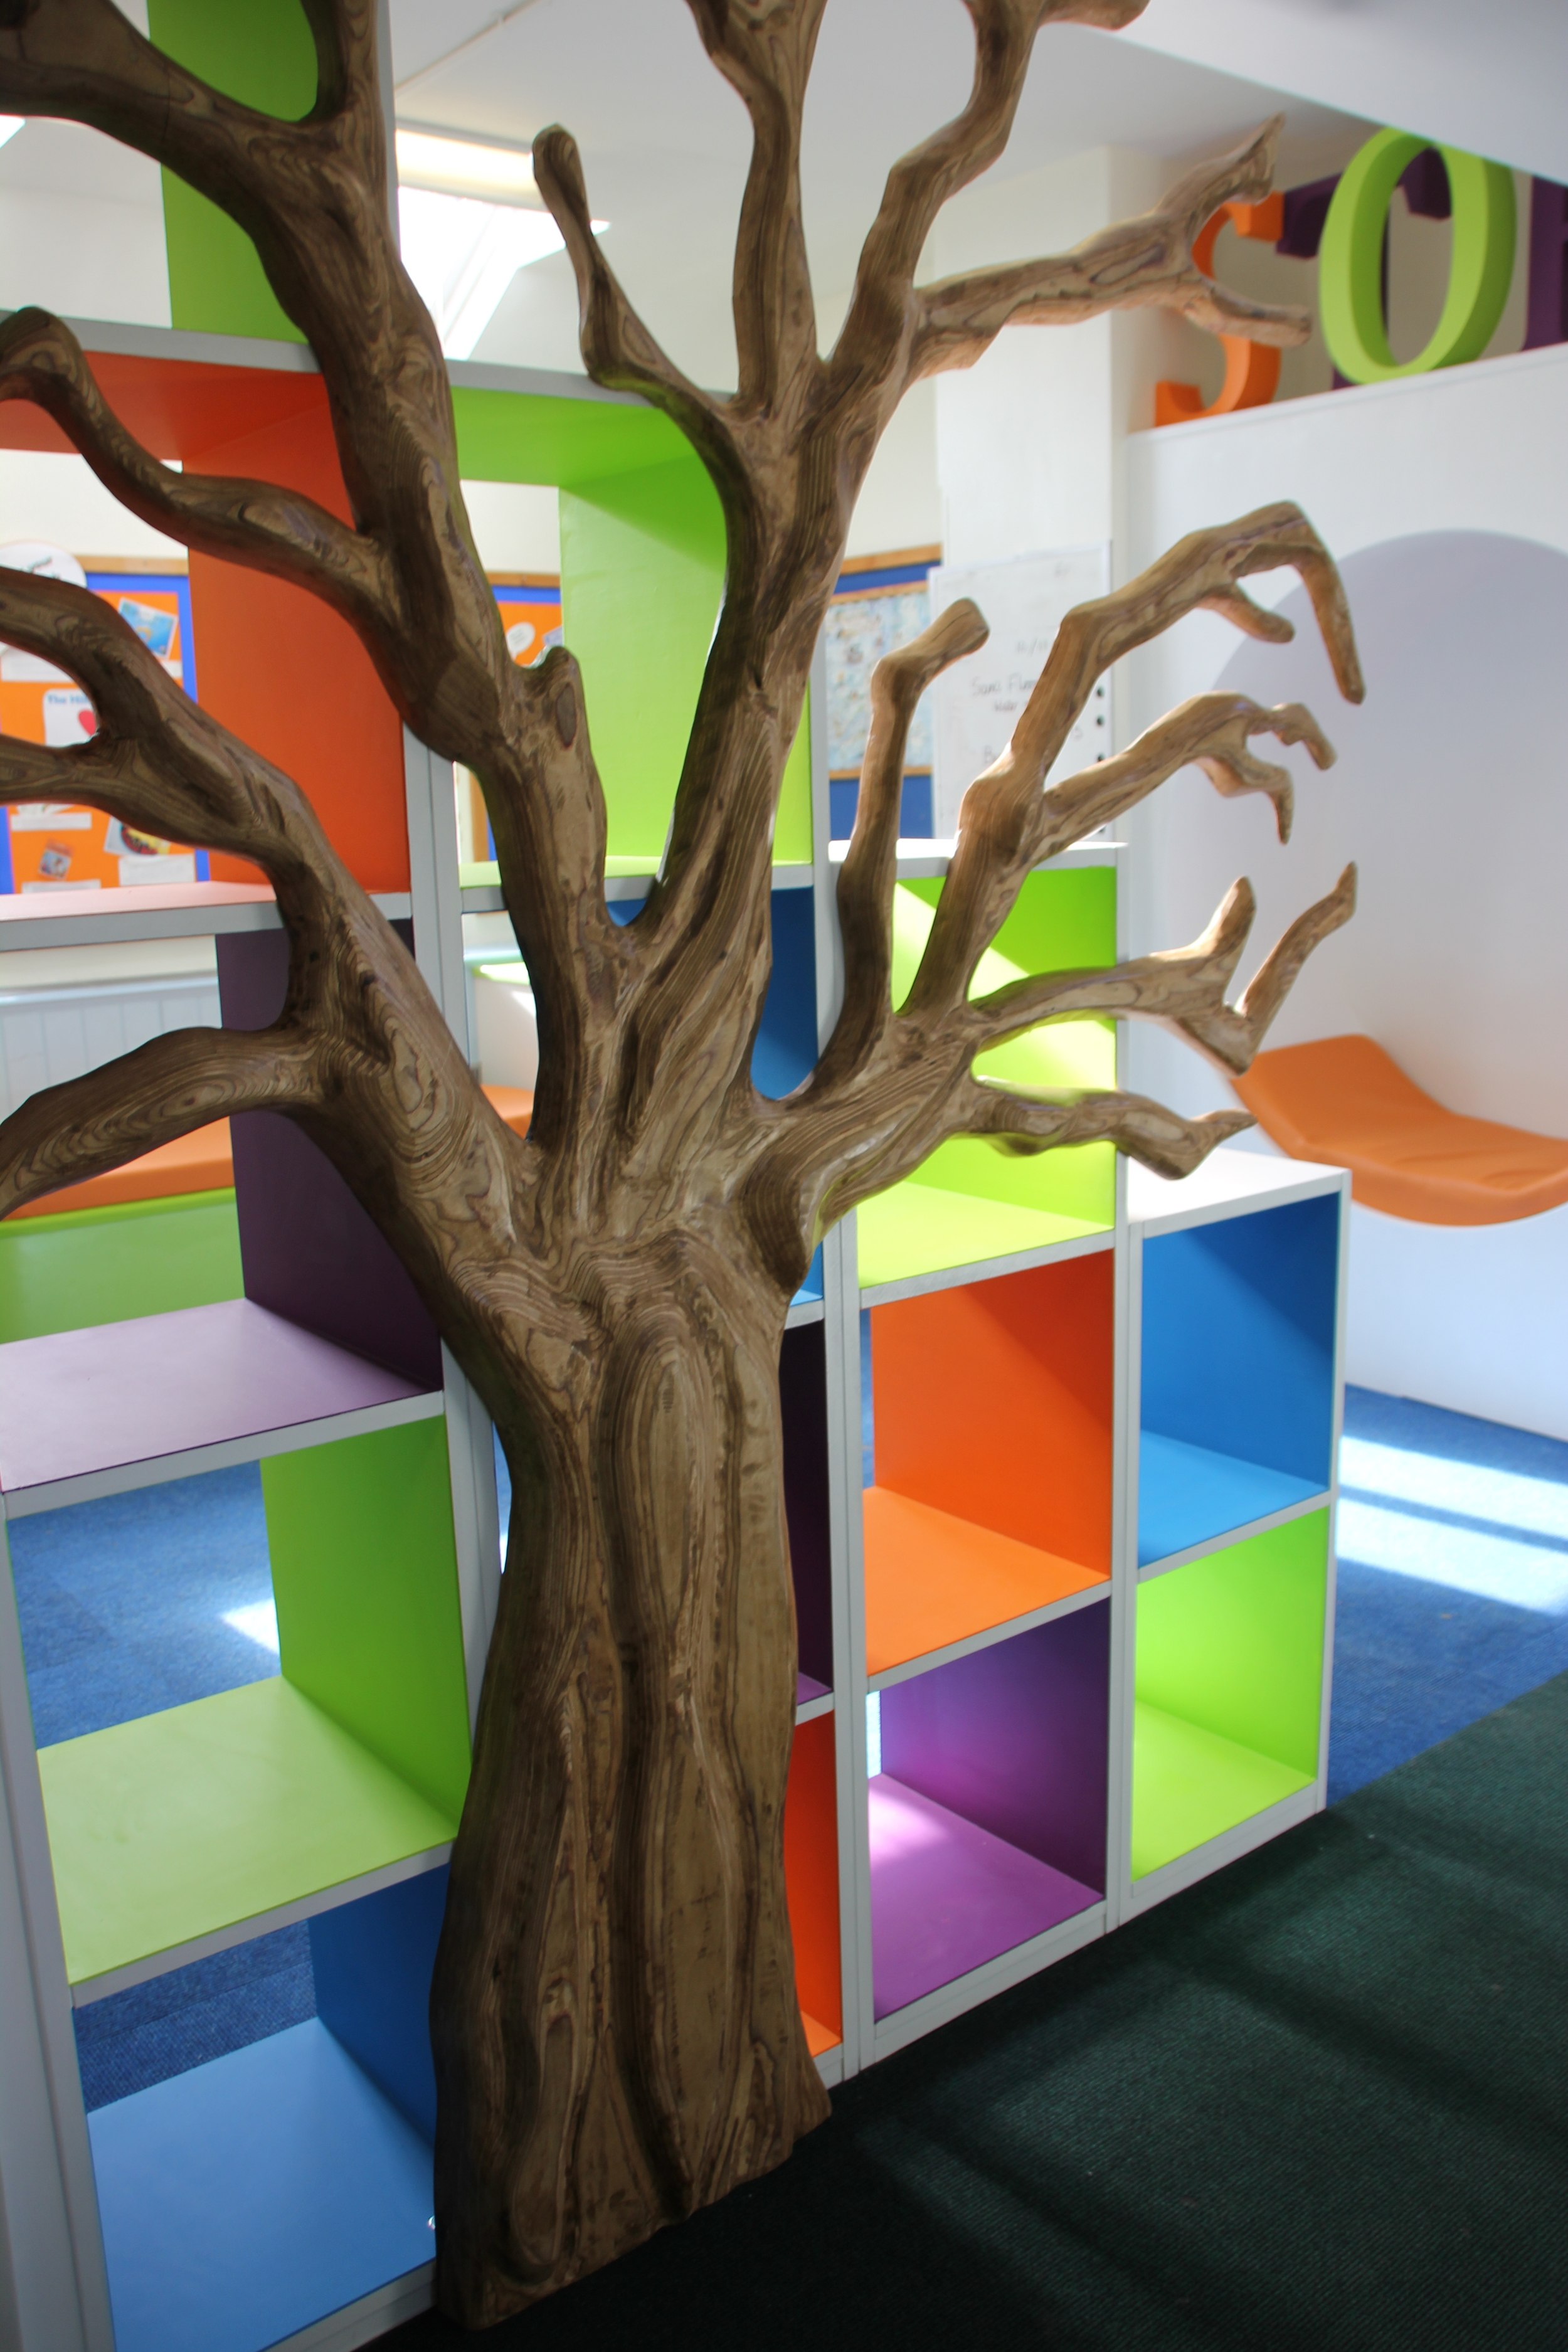 Carved plywood tree and open box shelving